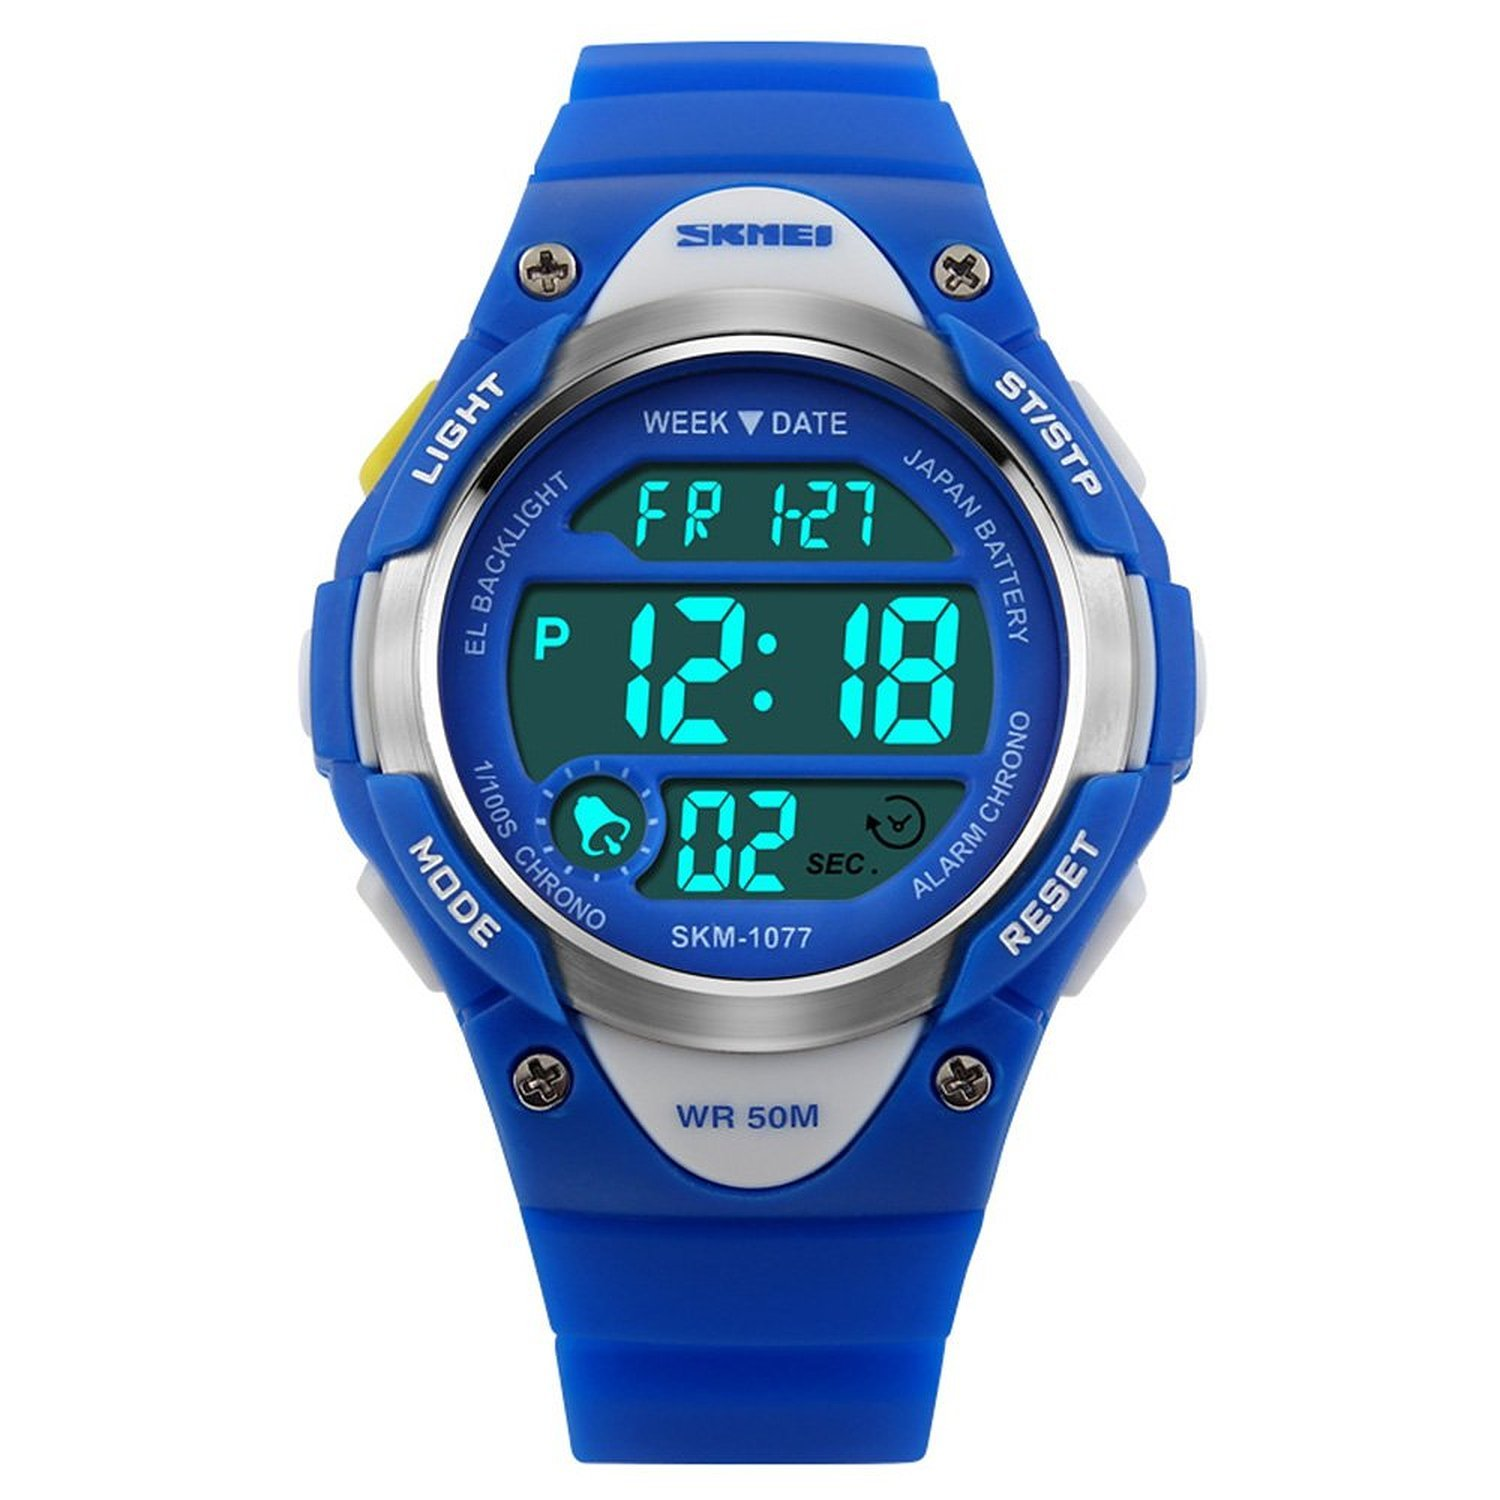 Kids Sport Digital Watch Waterproof for Boys Girls with Alarm Stopwatch Timer LED Electronic Wrist Watch Age 5-15 Children Gifts 1077